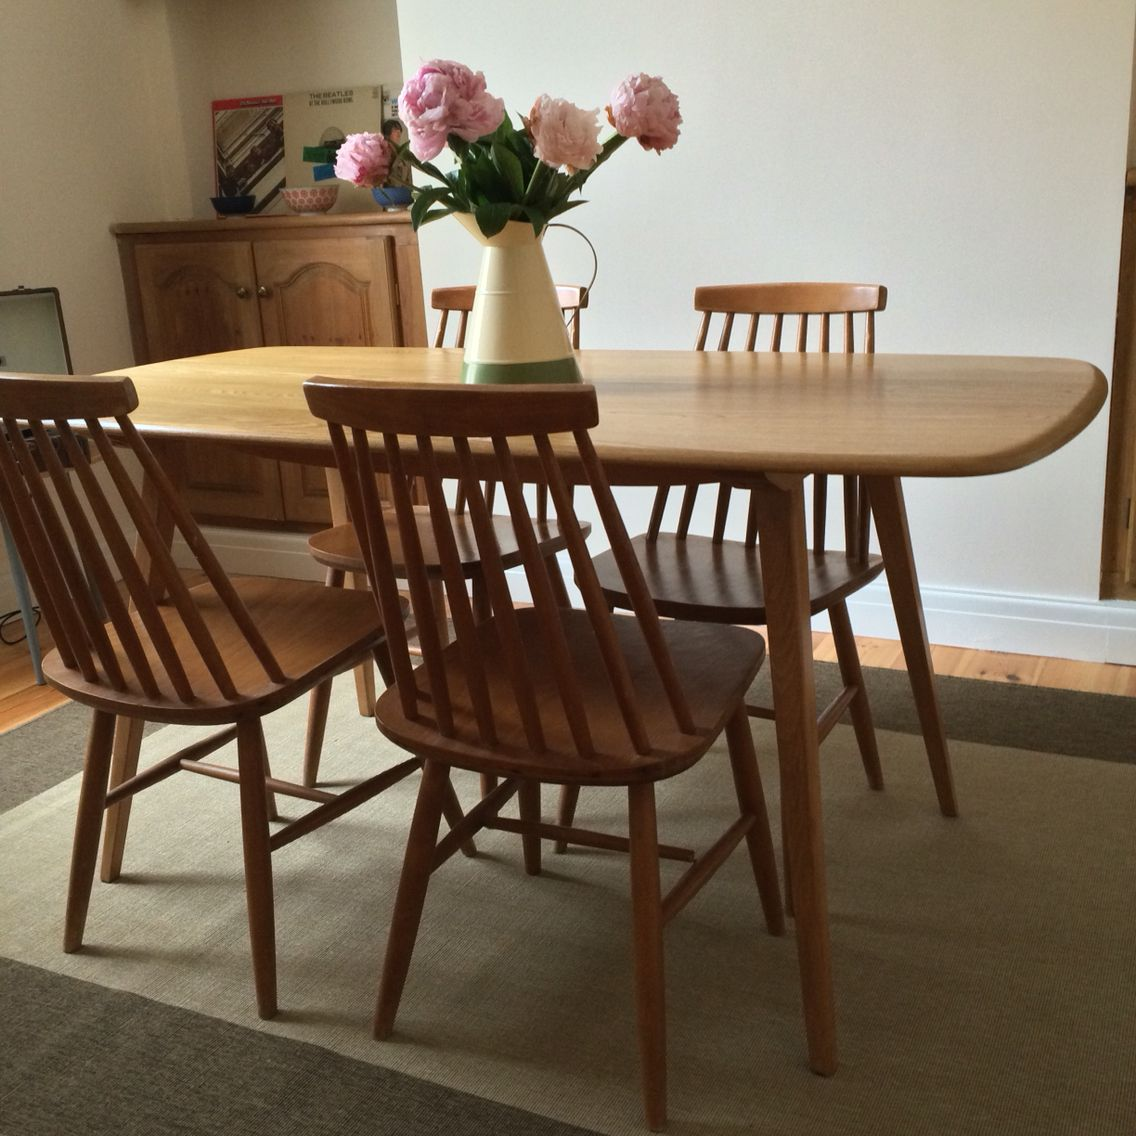 Excellent Restored Ercol Plank Table Before Ercol Style Chairs G Download Free Architecture Designs Licukmadebymaigaardcom